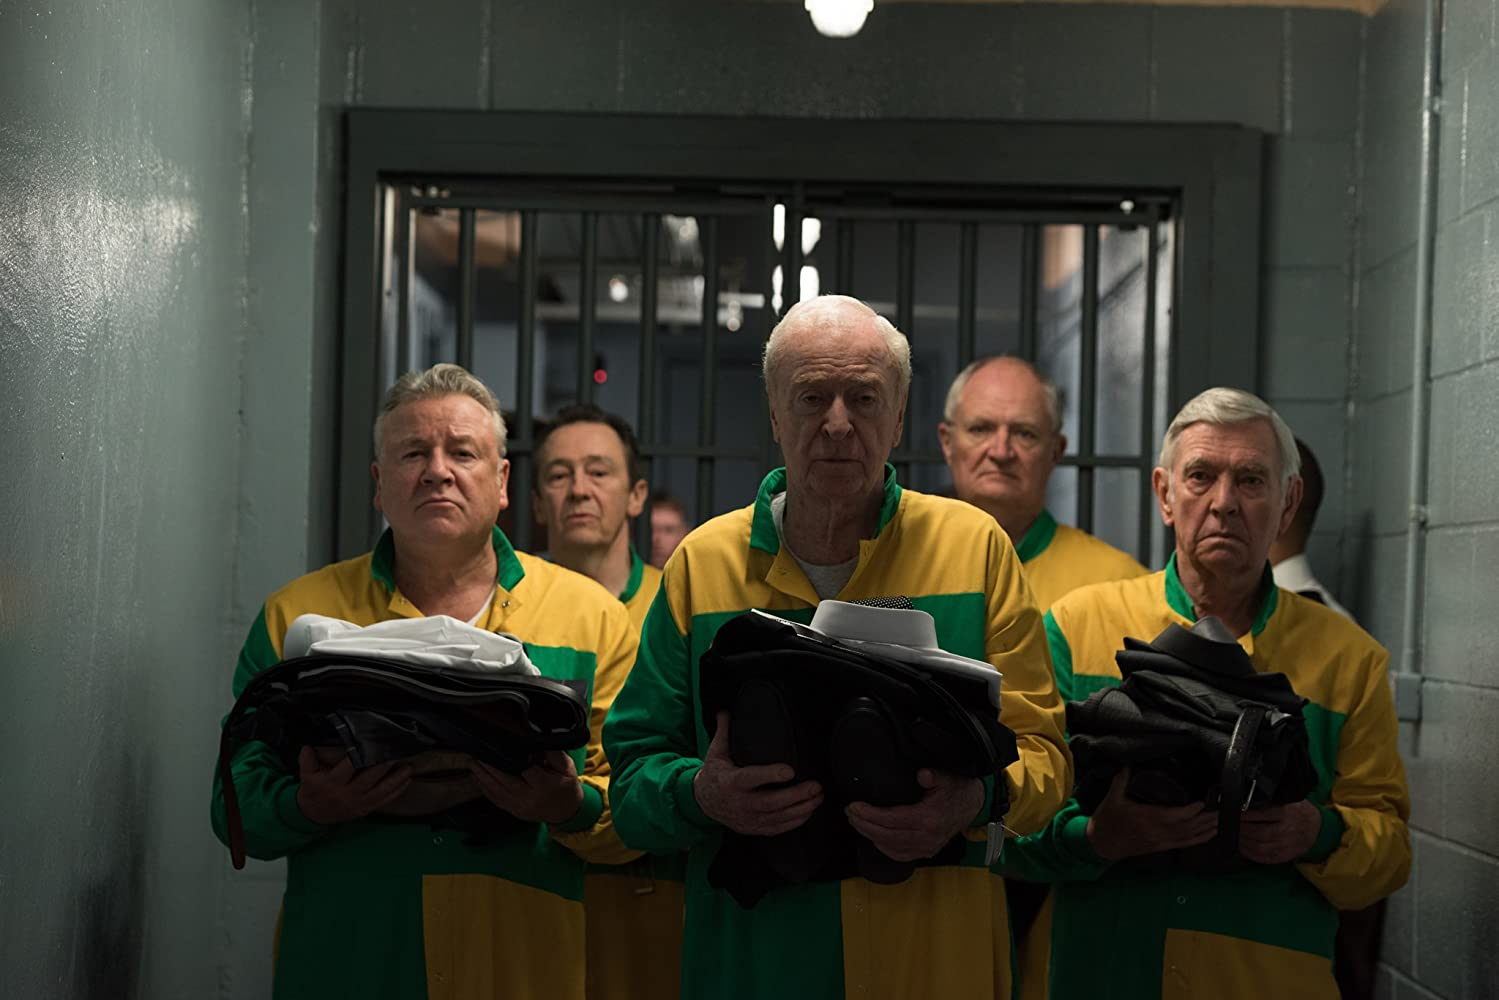 Michael Caine, Jim Broadbent, Tom Courtenay, Paul Whitehouse, and Ray Winstone